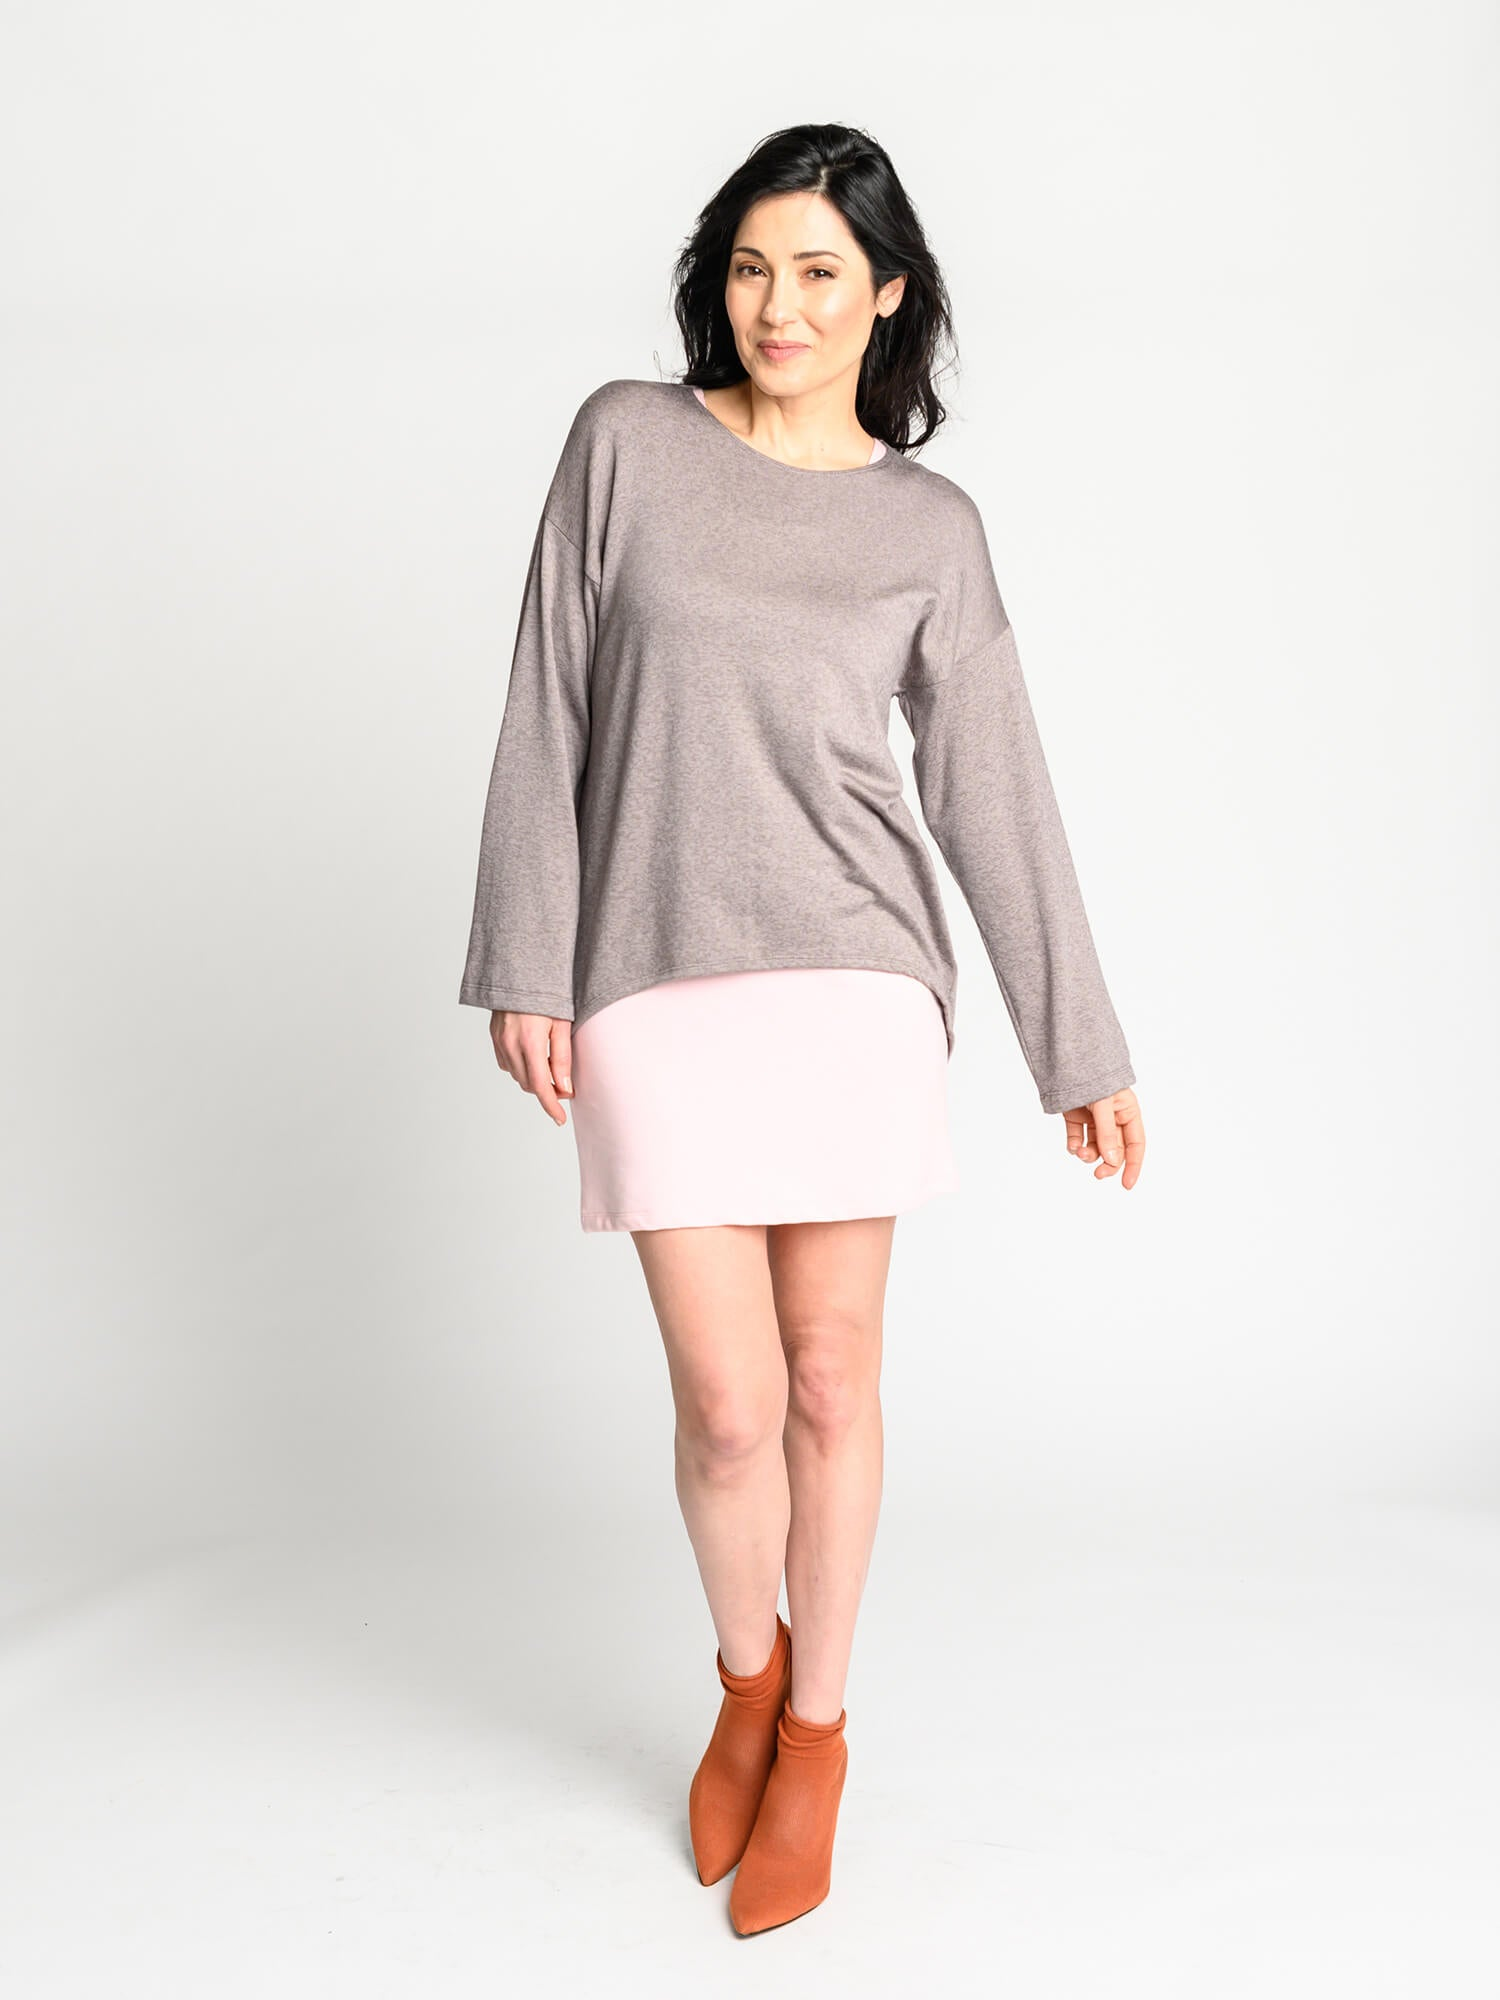 The Crescent Sweater in mink with scooped, high-low hemline and drop shoulder detail.